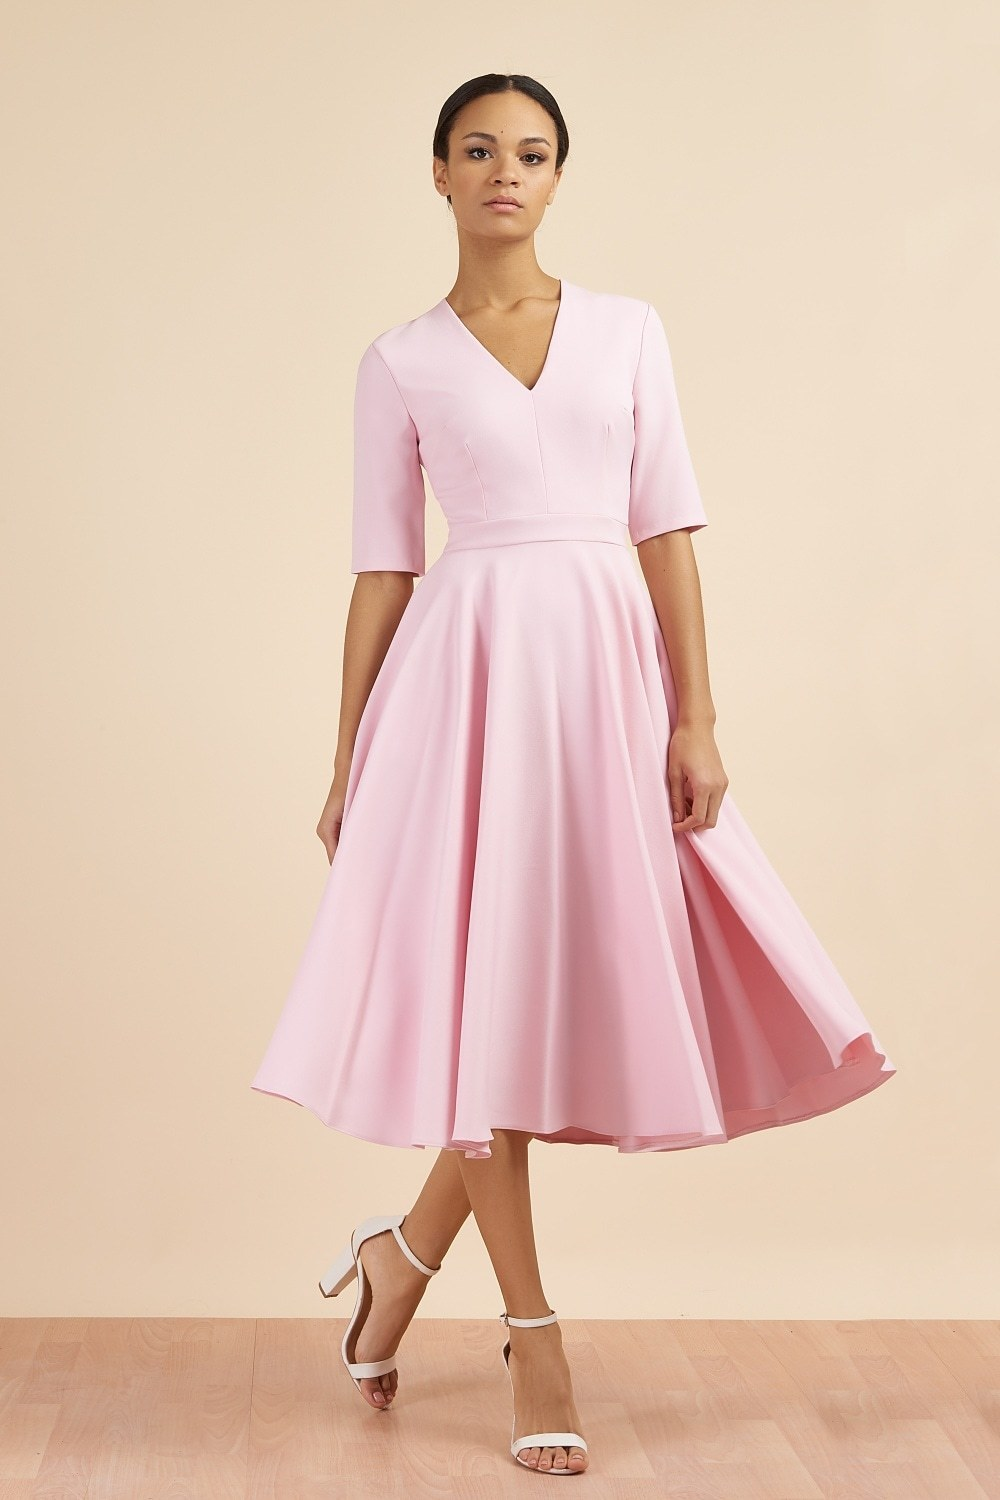 Myla Dress in Pale Pink PDCDRMYLAPPINK